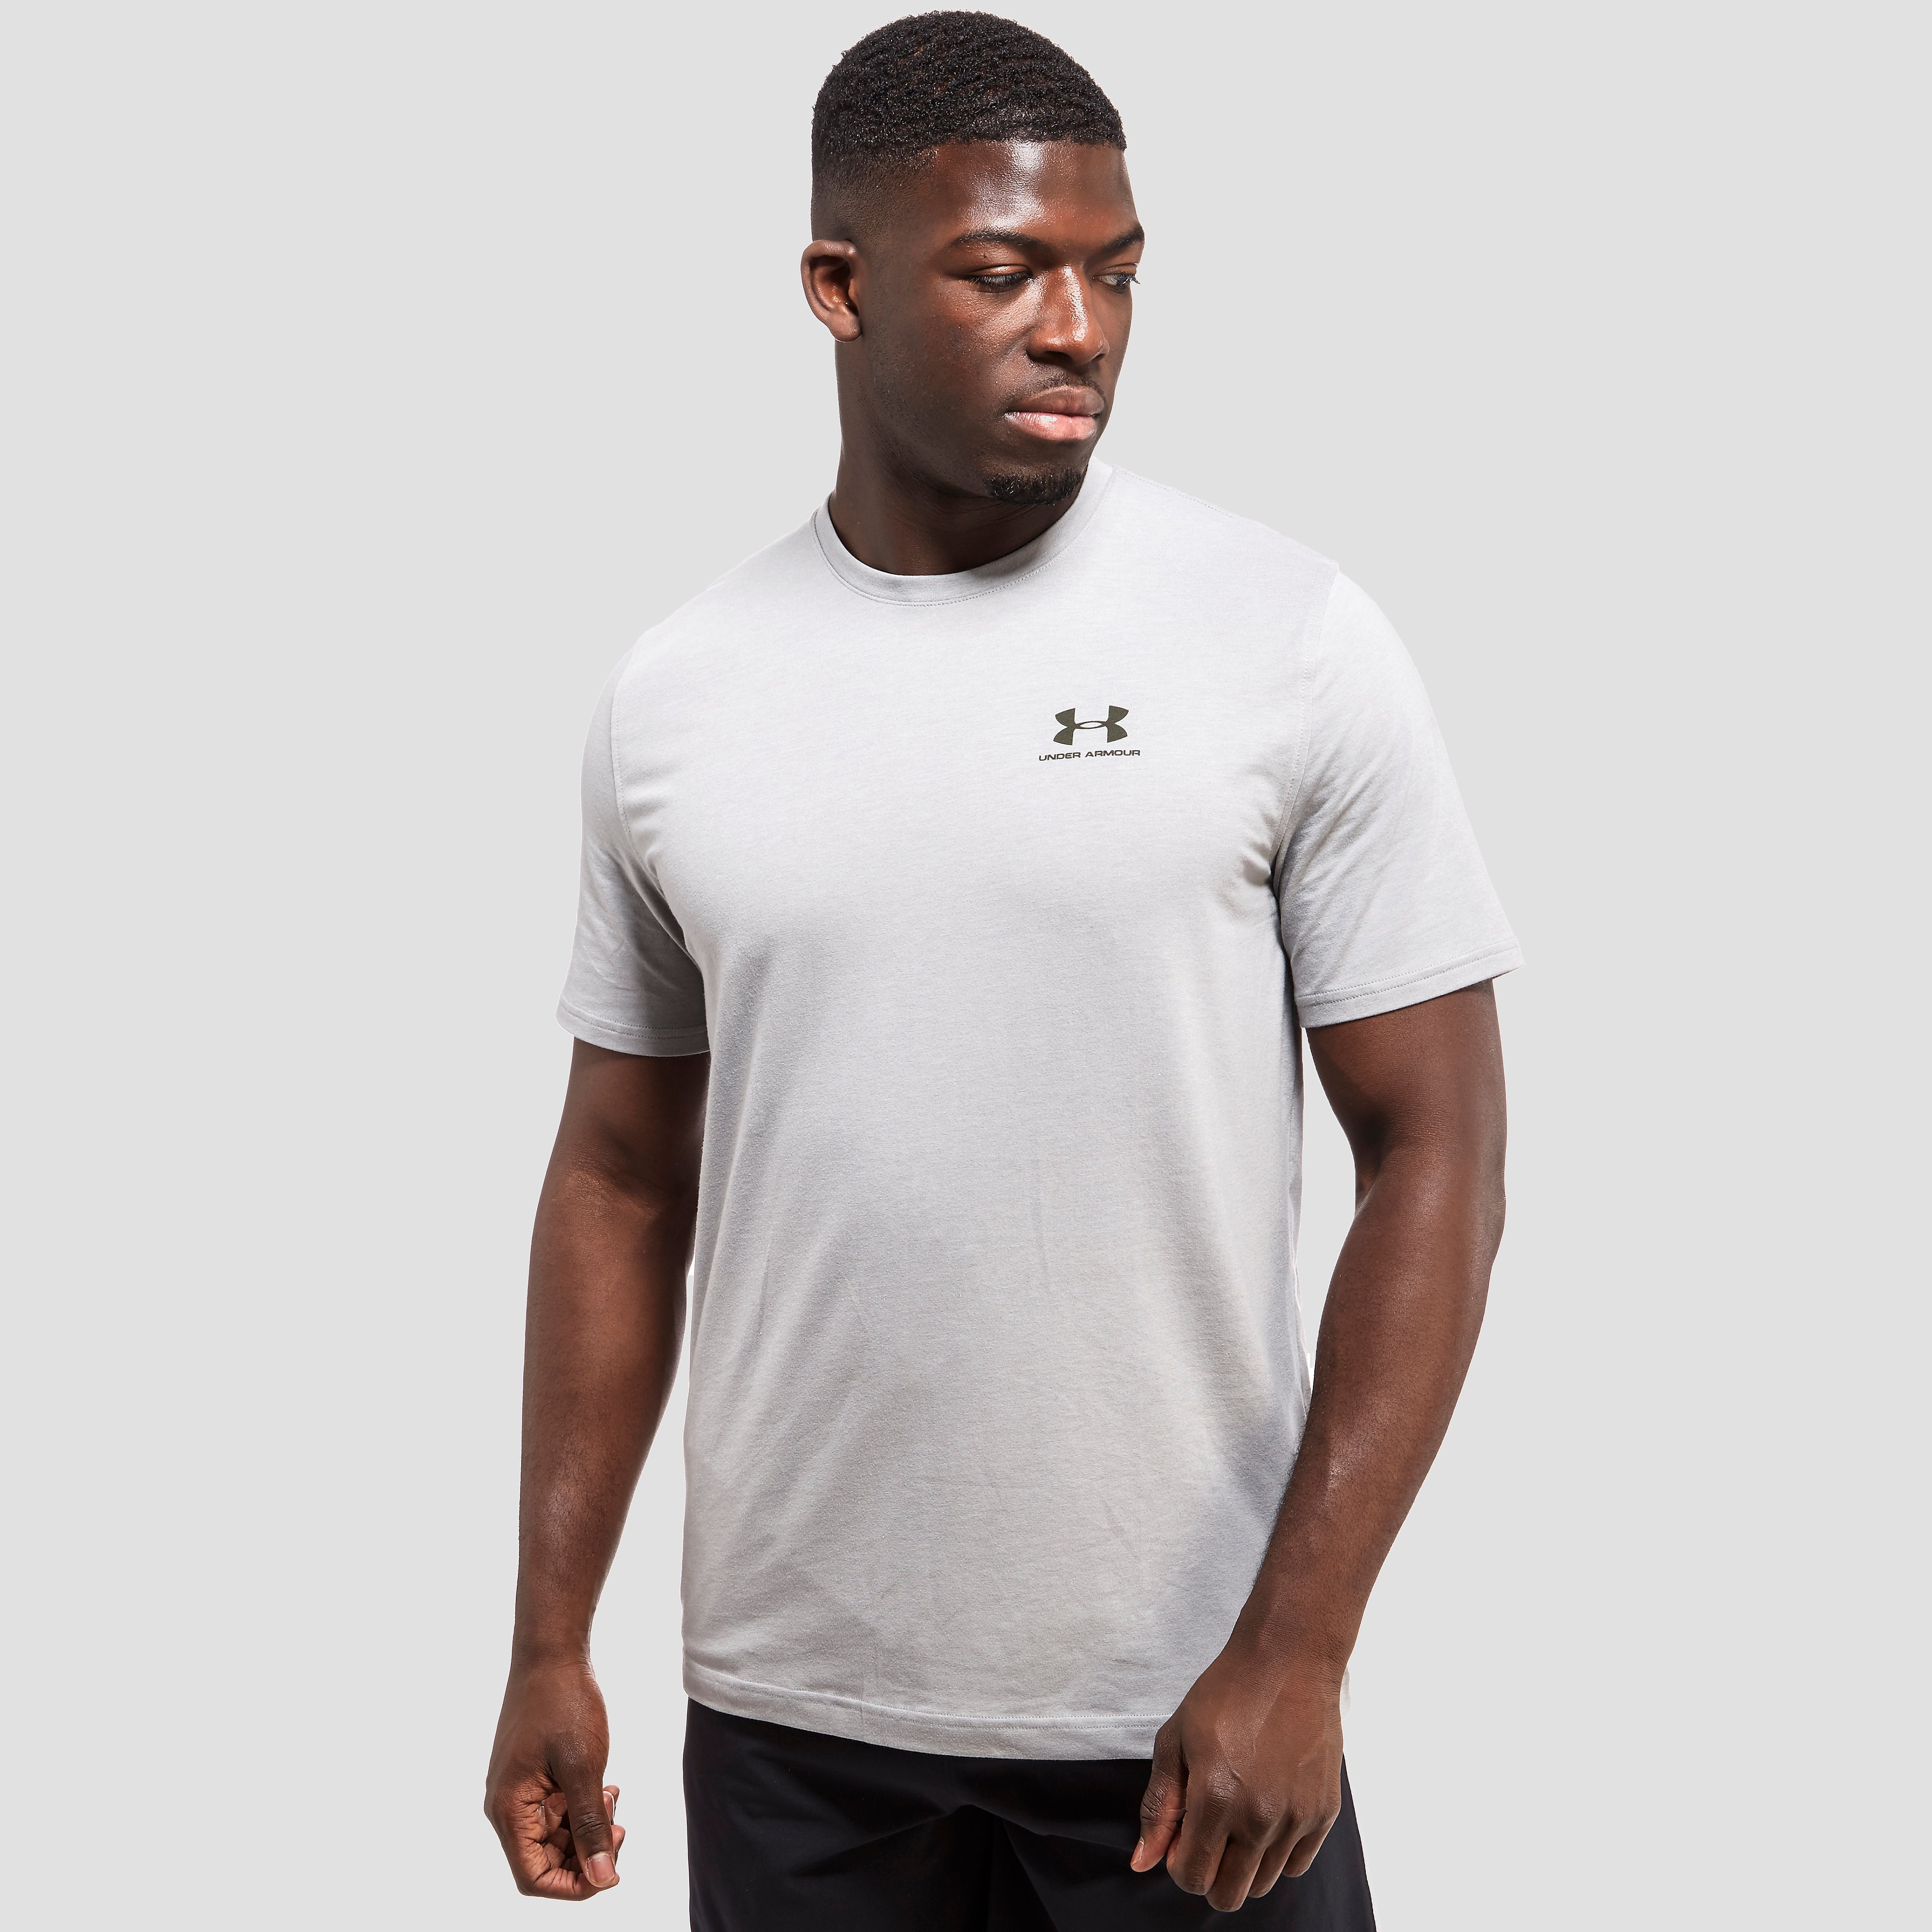 Under Armour Charged Men's Cotton T-shirt